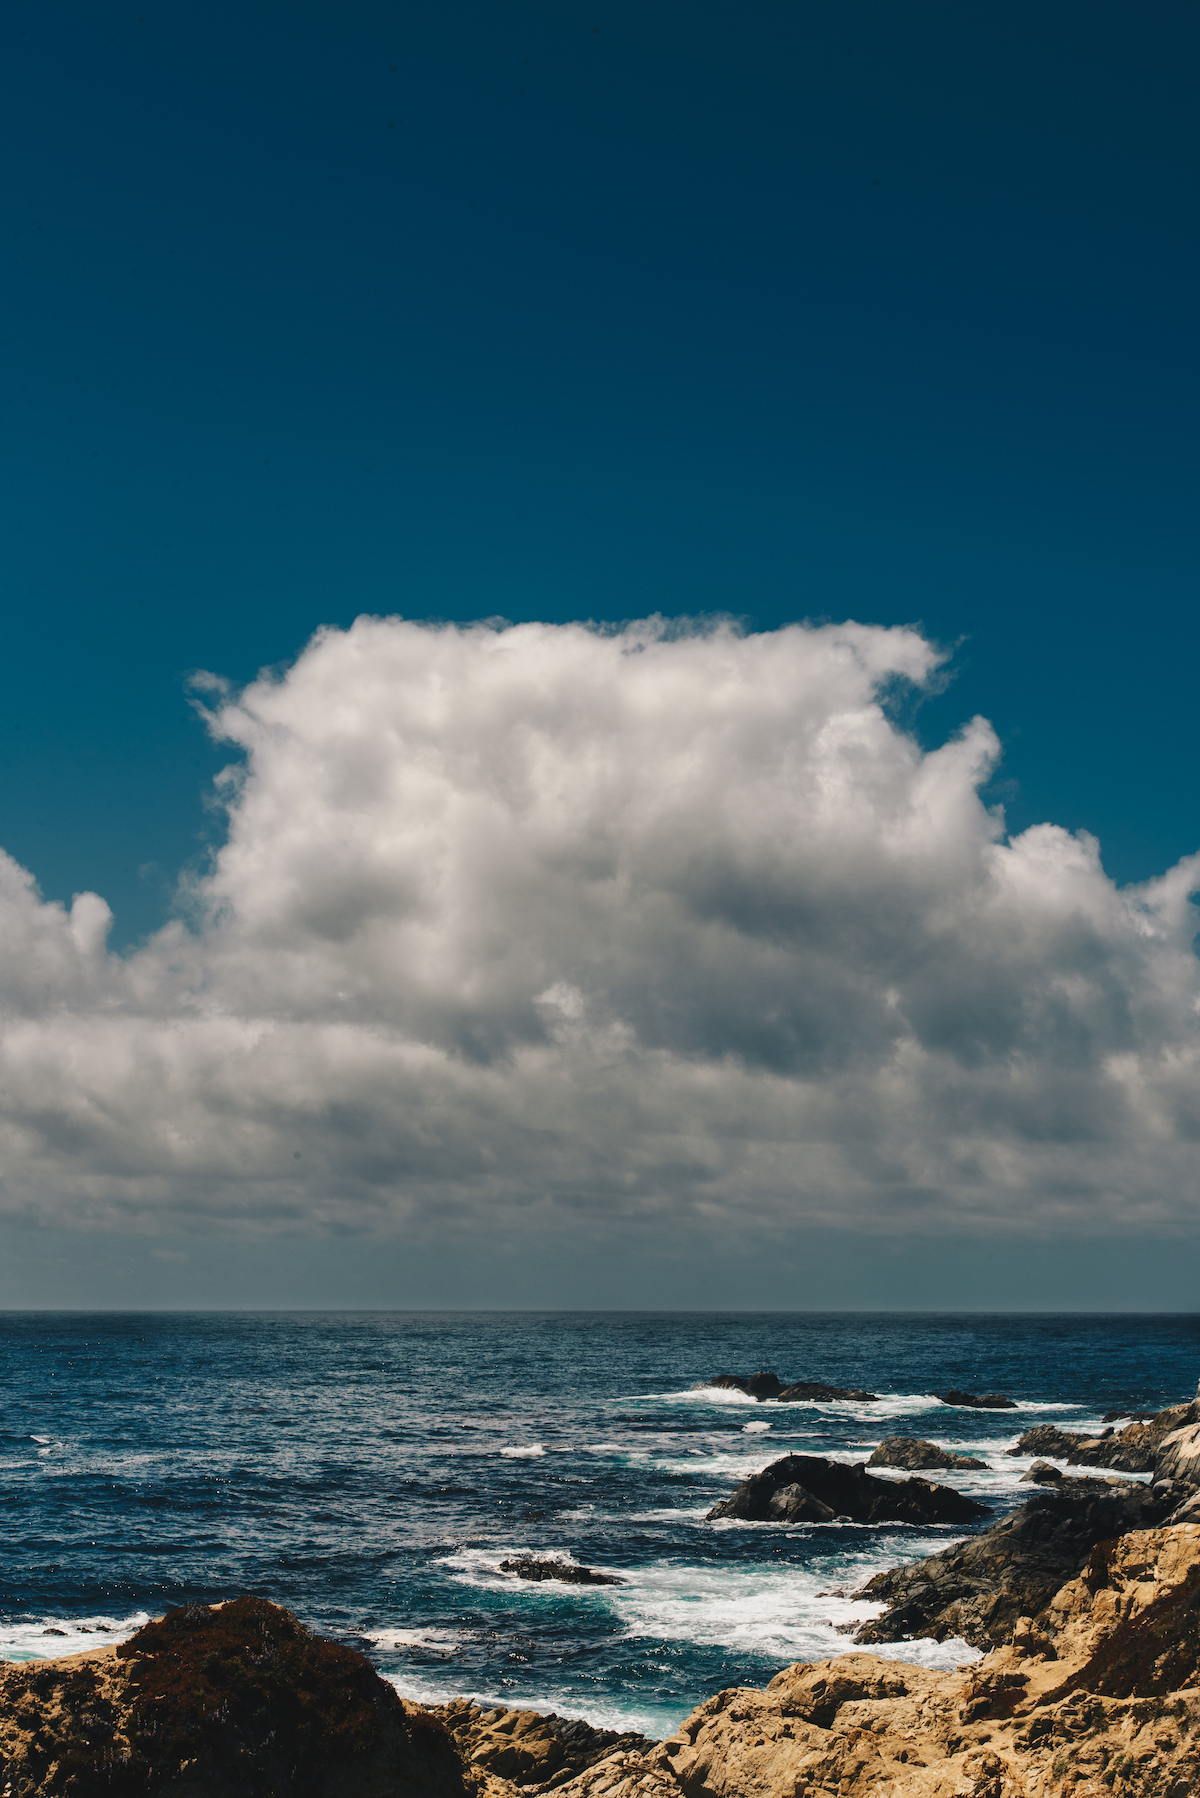 A cloud over the ocean and shoreline